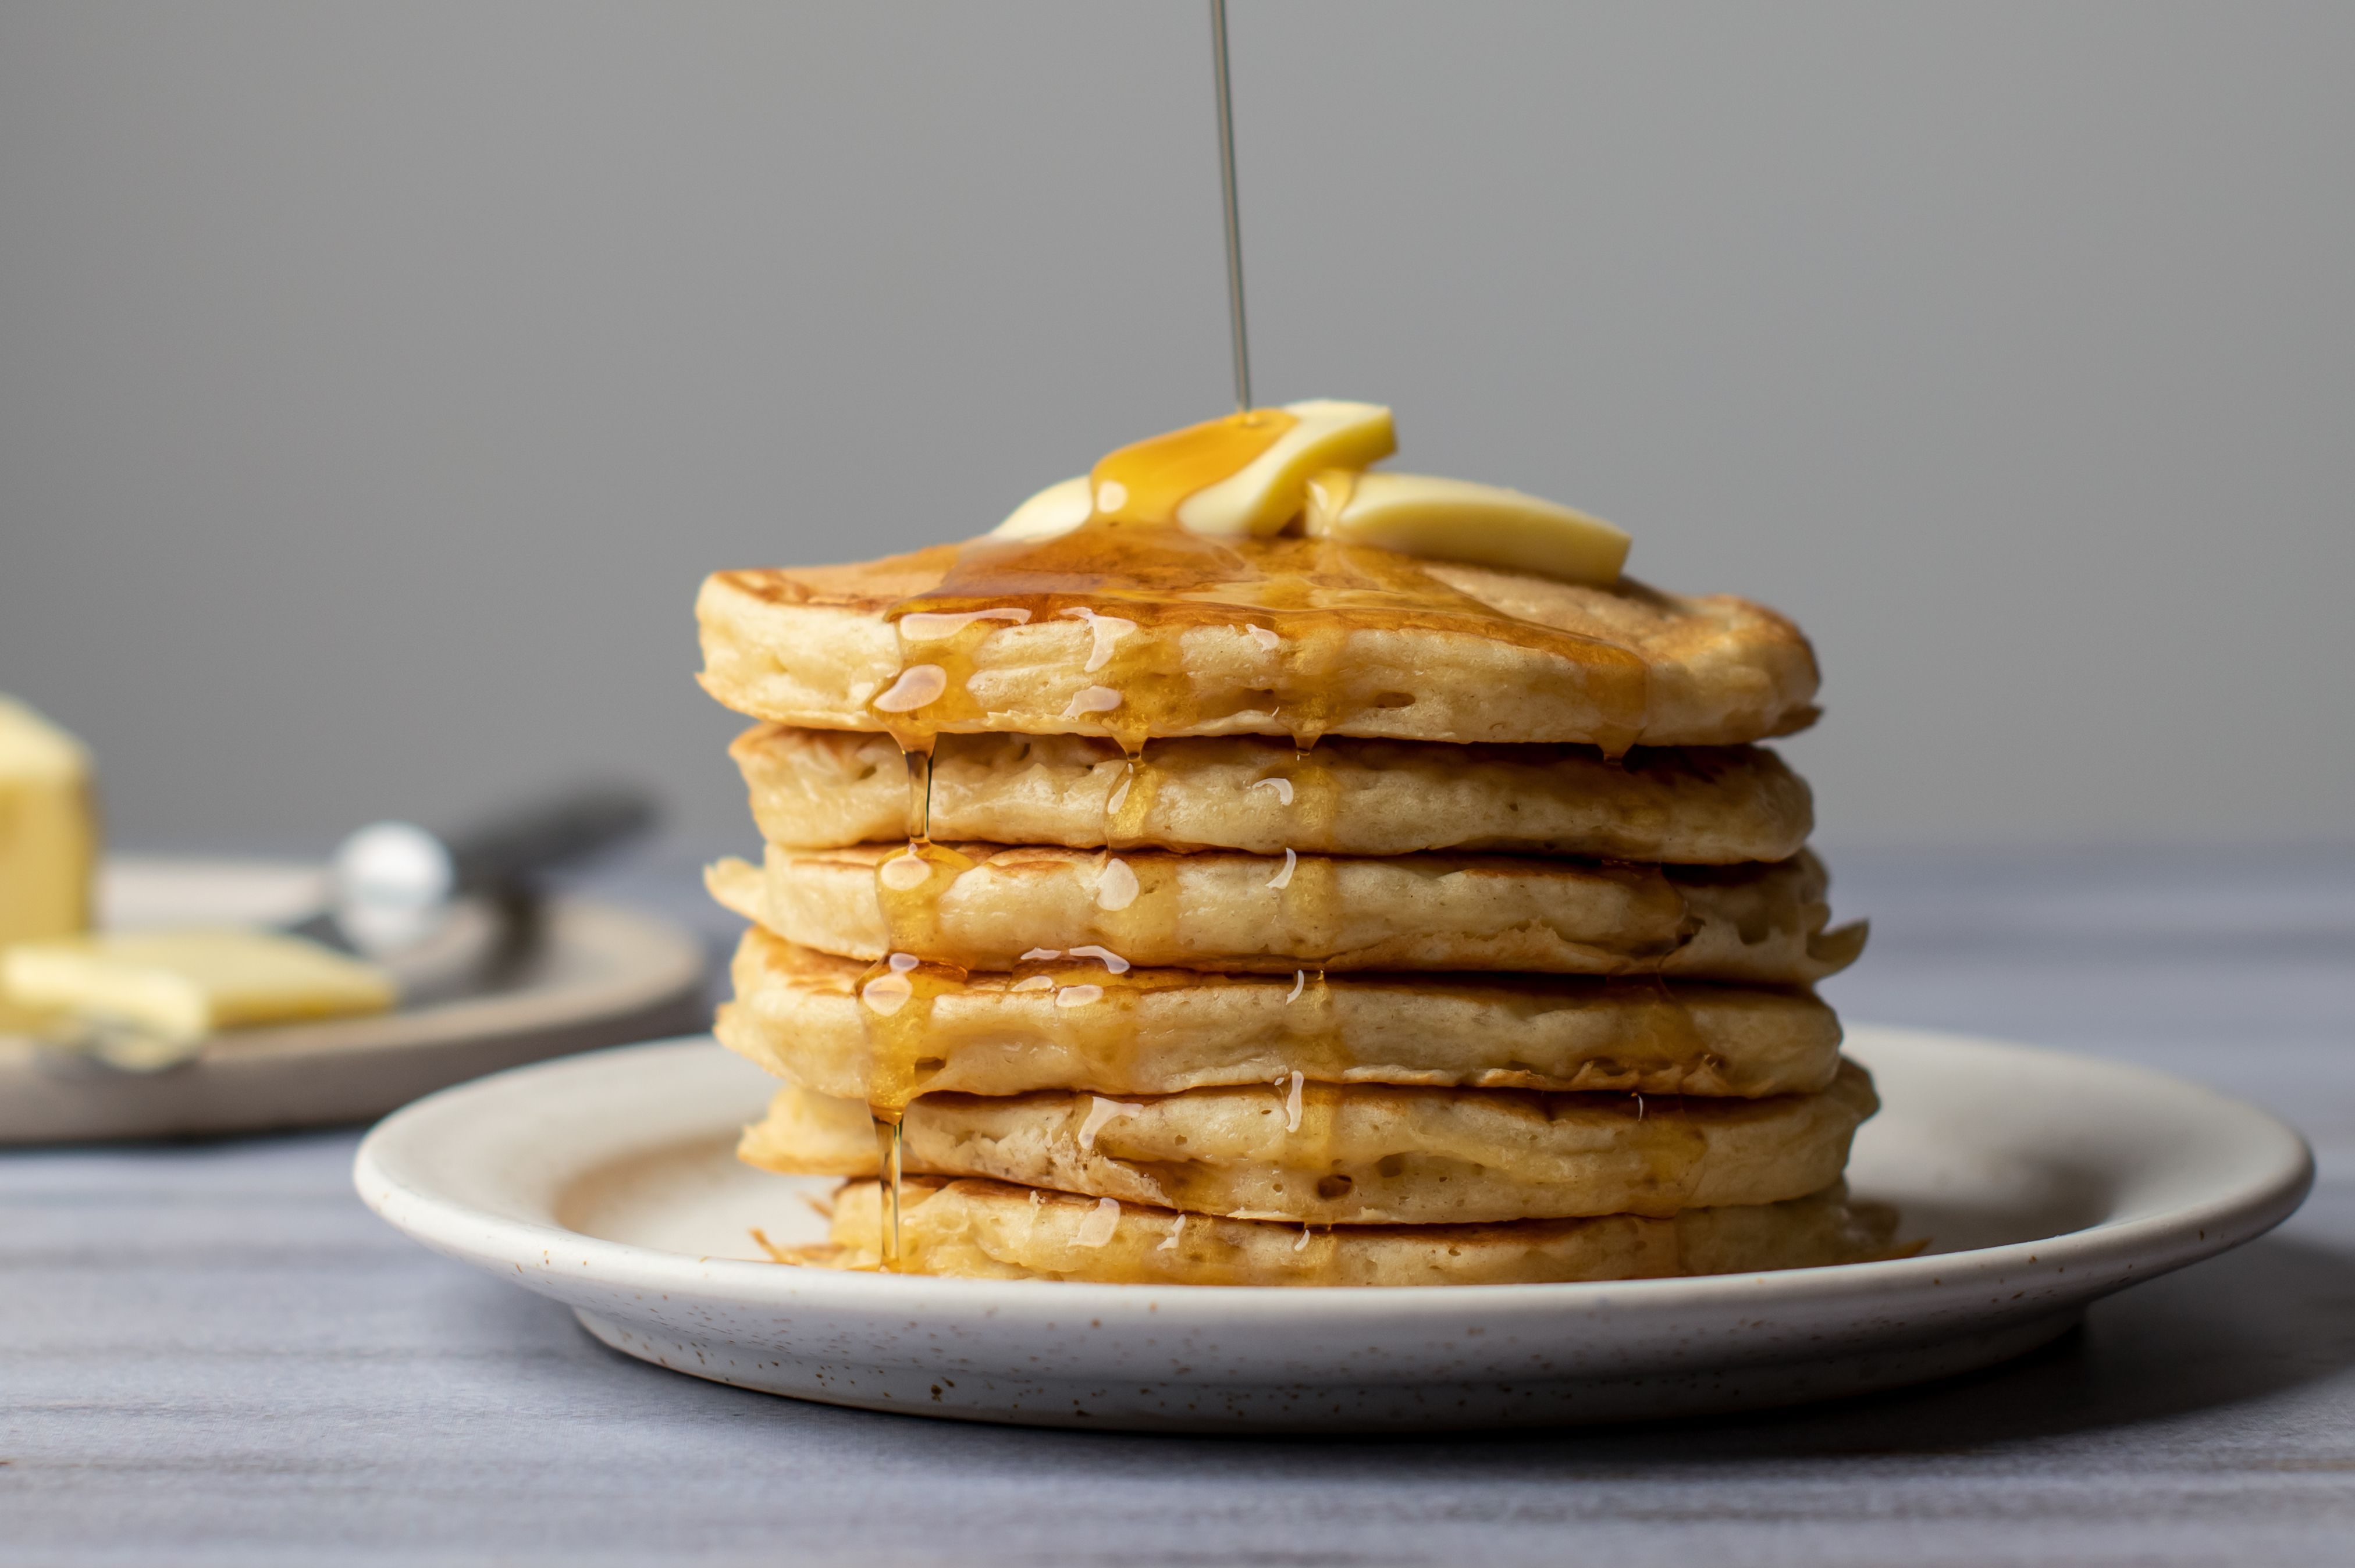 These Top Rated Buttermilk Pancakes Are Everything You Could Hope Want These Cakes Are Light And Fluffy In 2020 Buttermilk Pancakes Pancake Recipe Buttermilk Pancakes